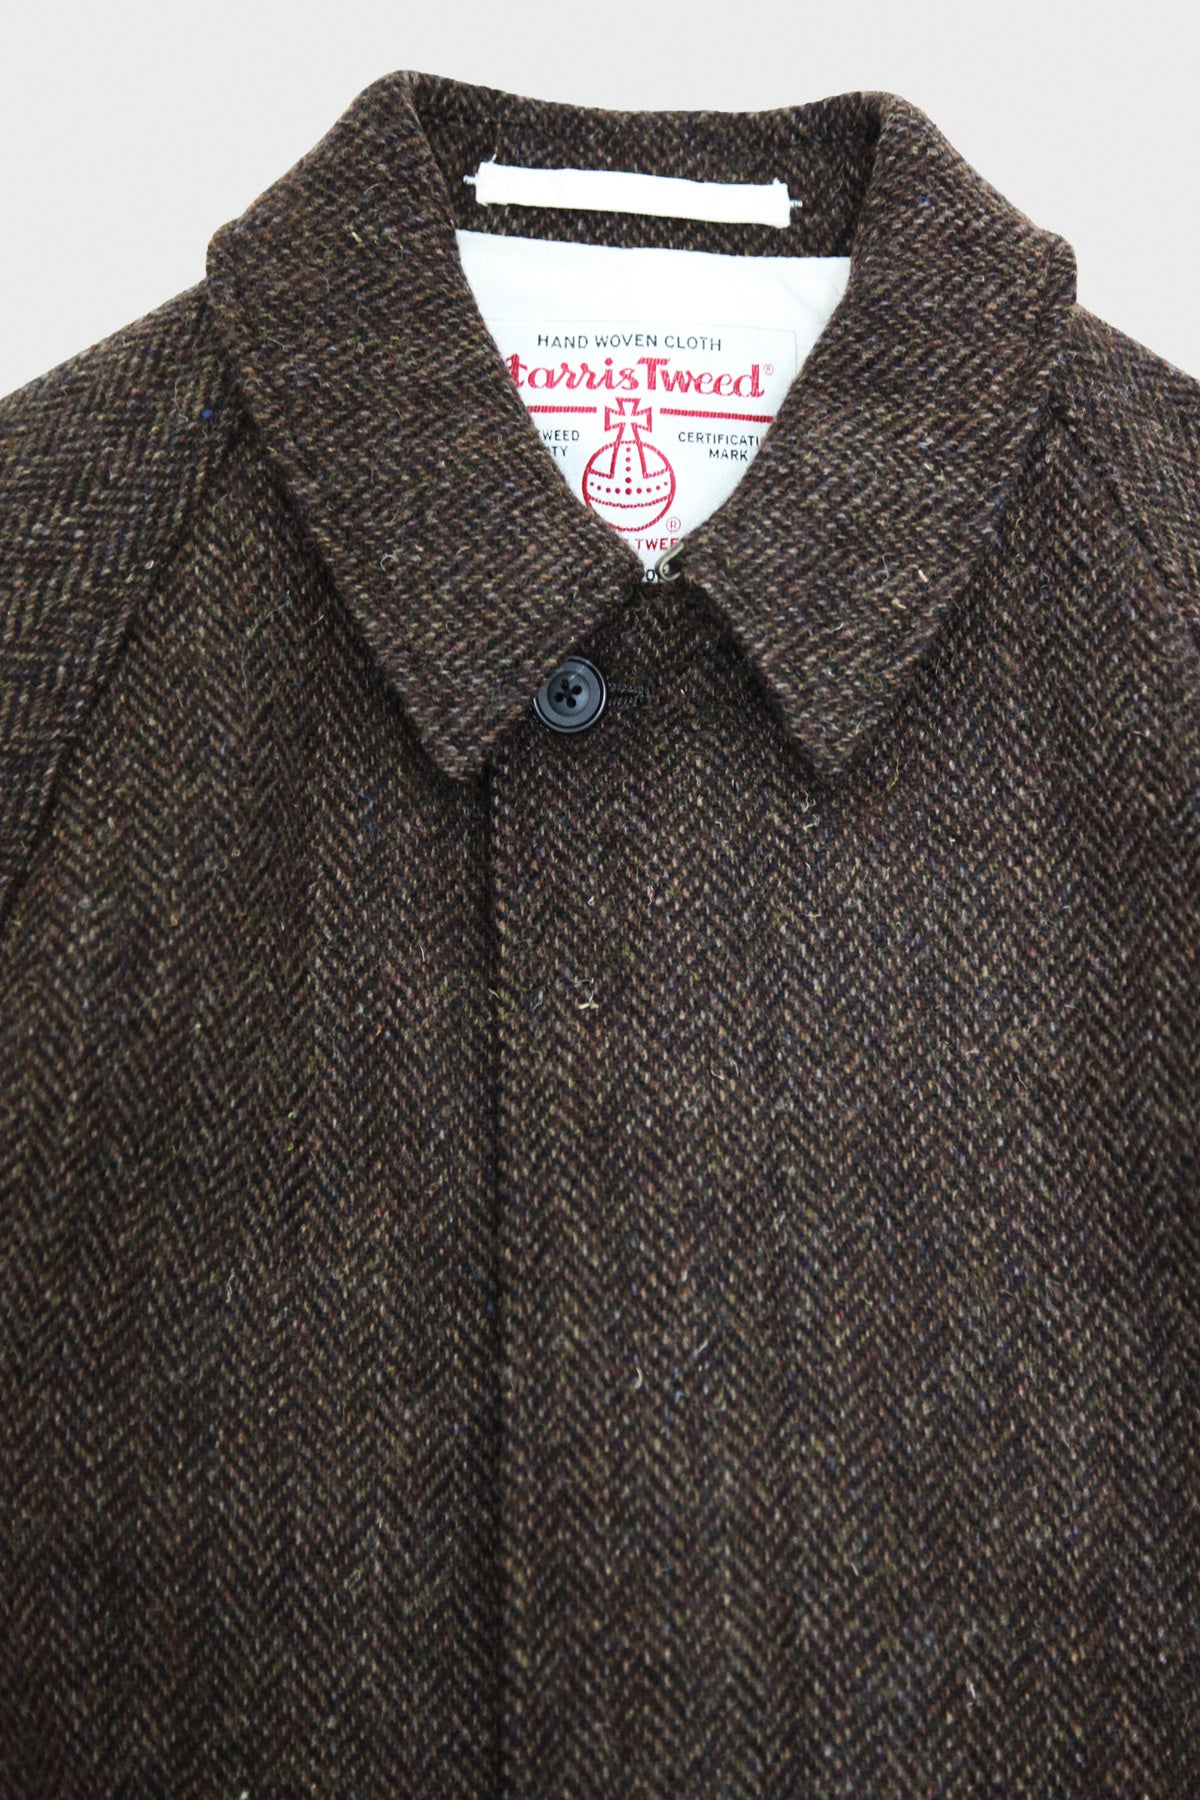 Beams Plus - Balmacaan Coat Harris Tweed - Brown Herringbone - Canoe Club